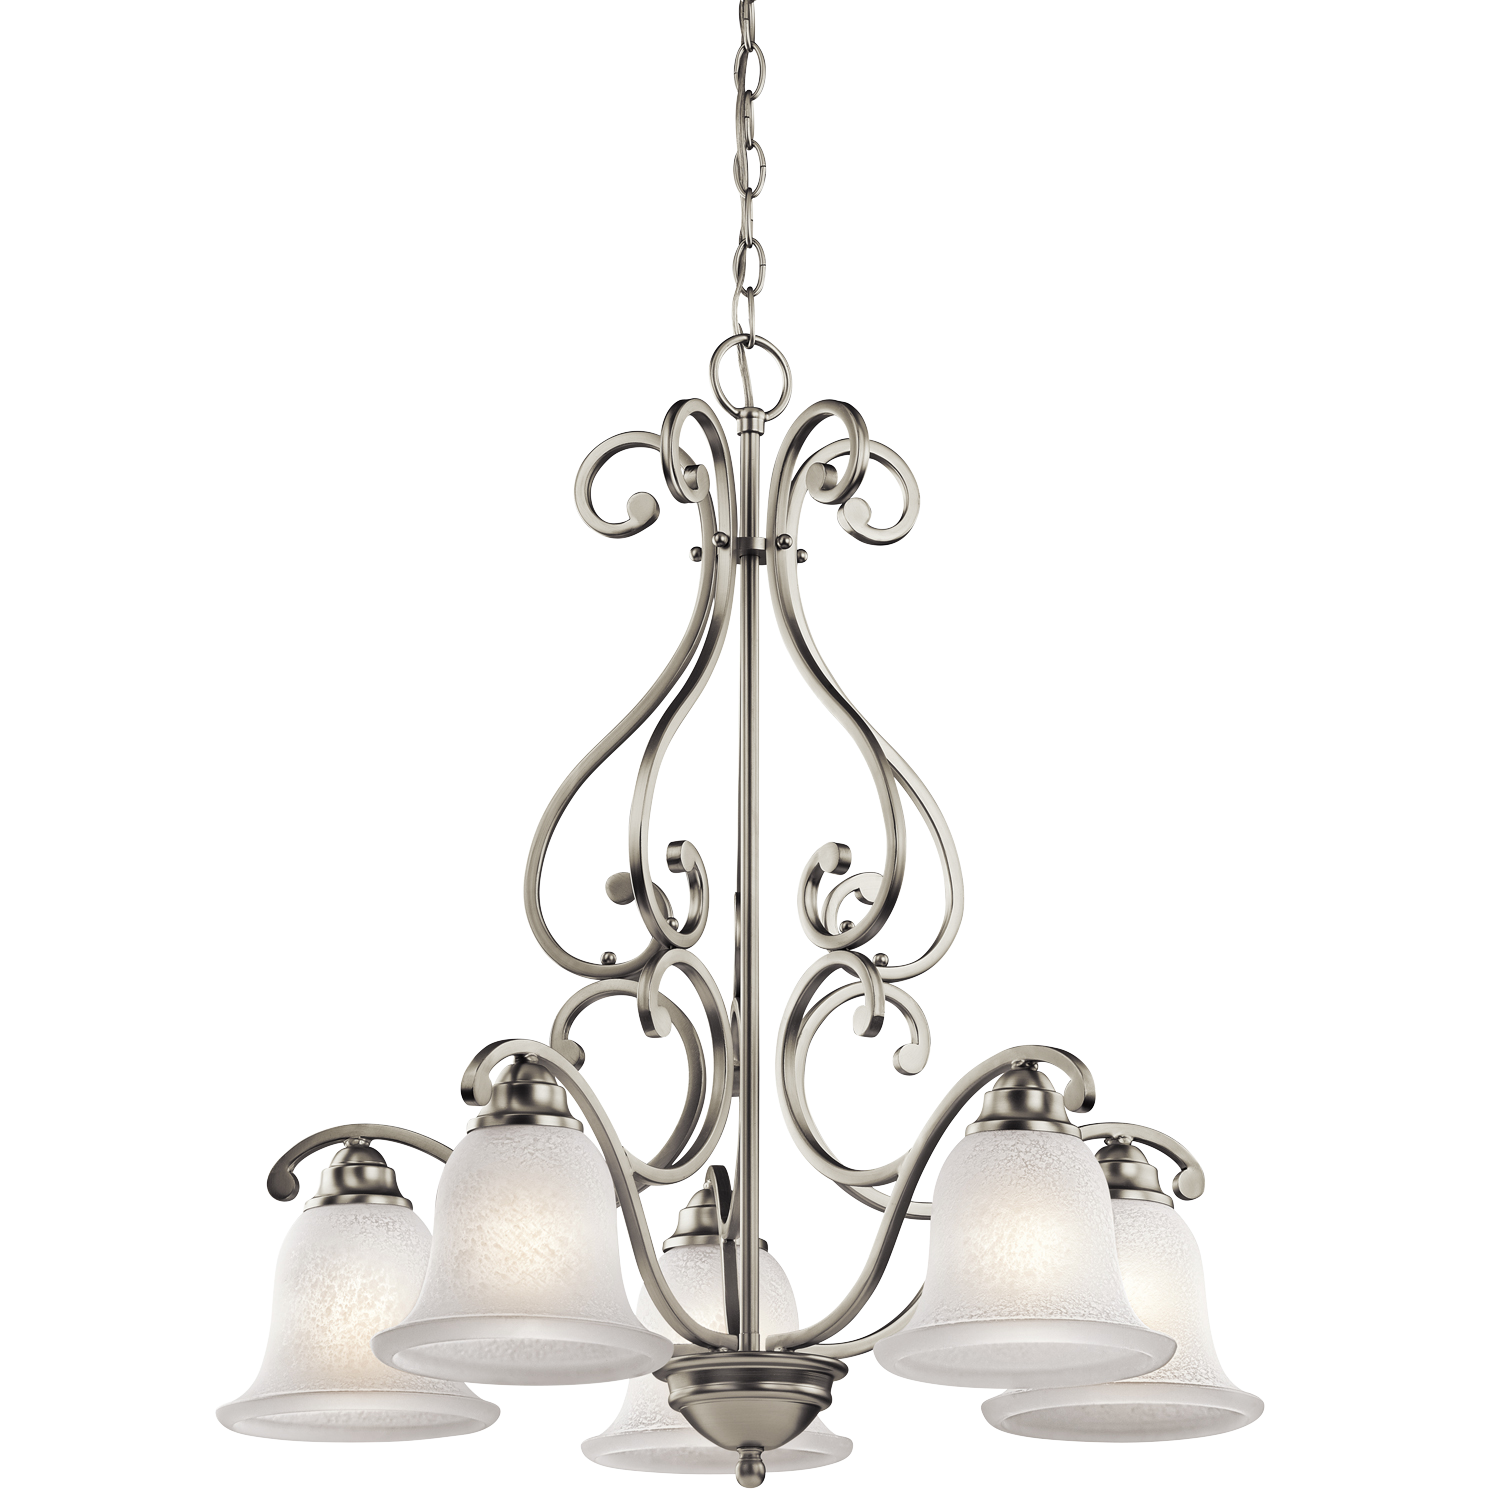 Charming Camerena 5 Light 1 Tier Chandelier Brushed Nickel By Cardello Lighting And Decor For Home Ideas